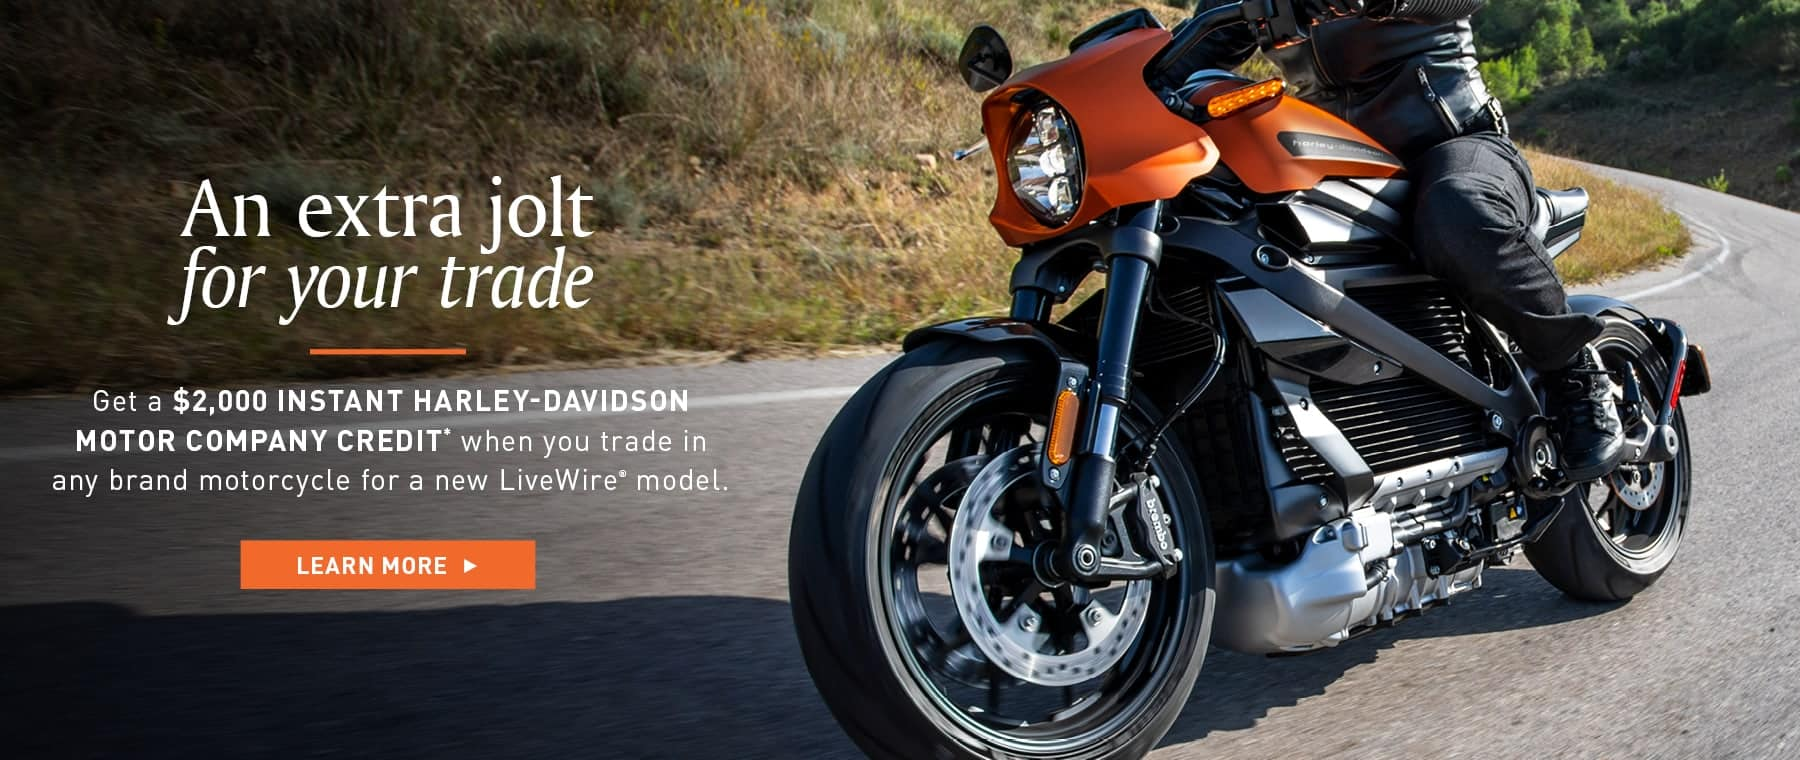 Harley-Davidson Livewire Trade In Credit